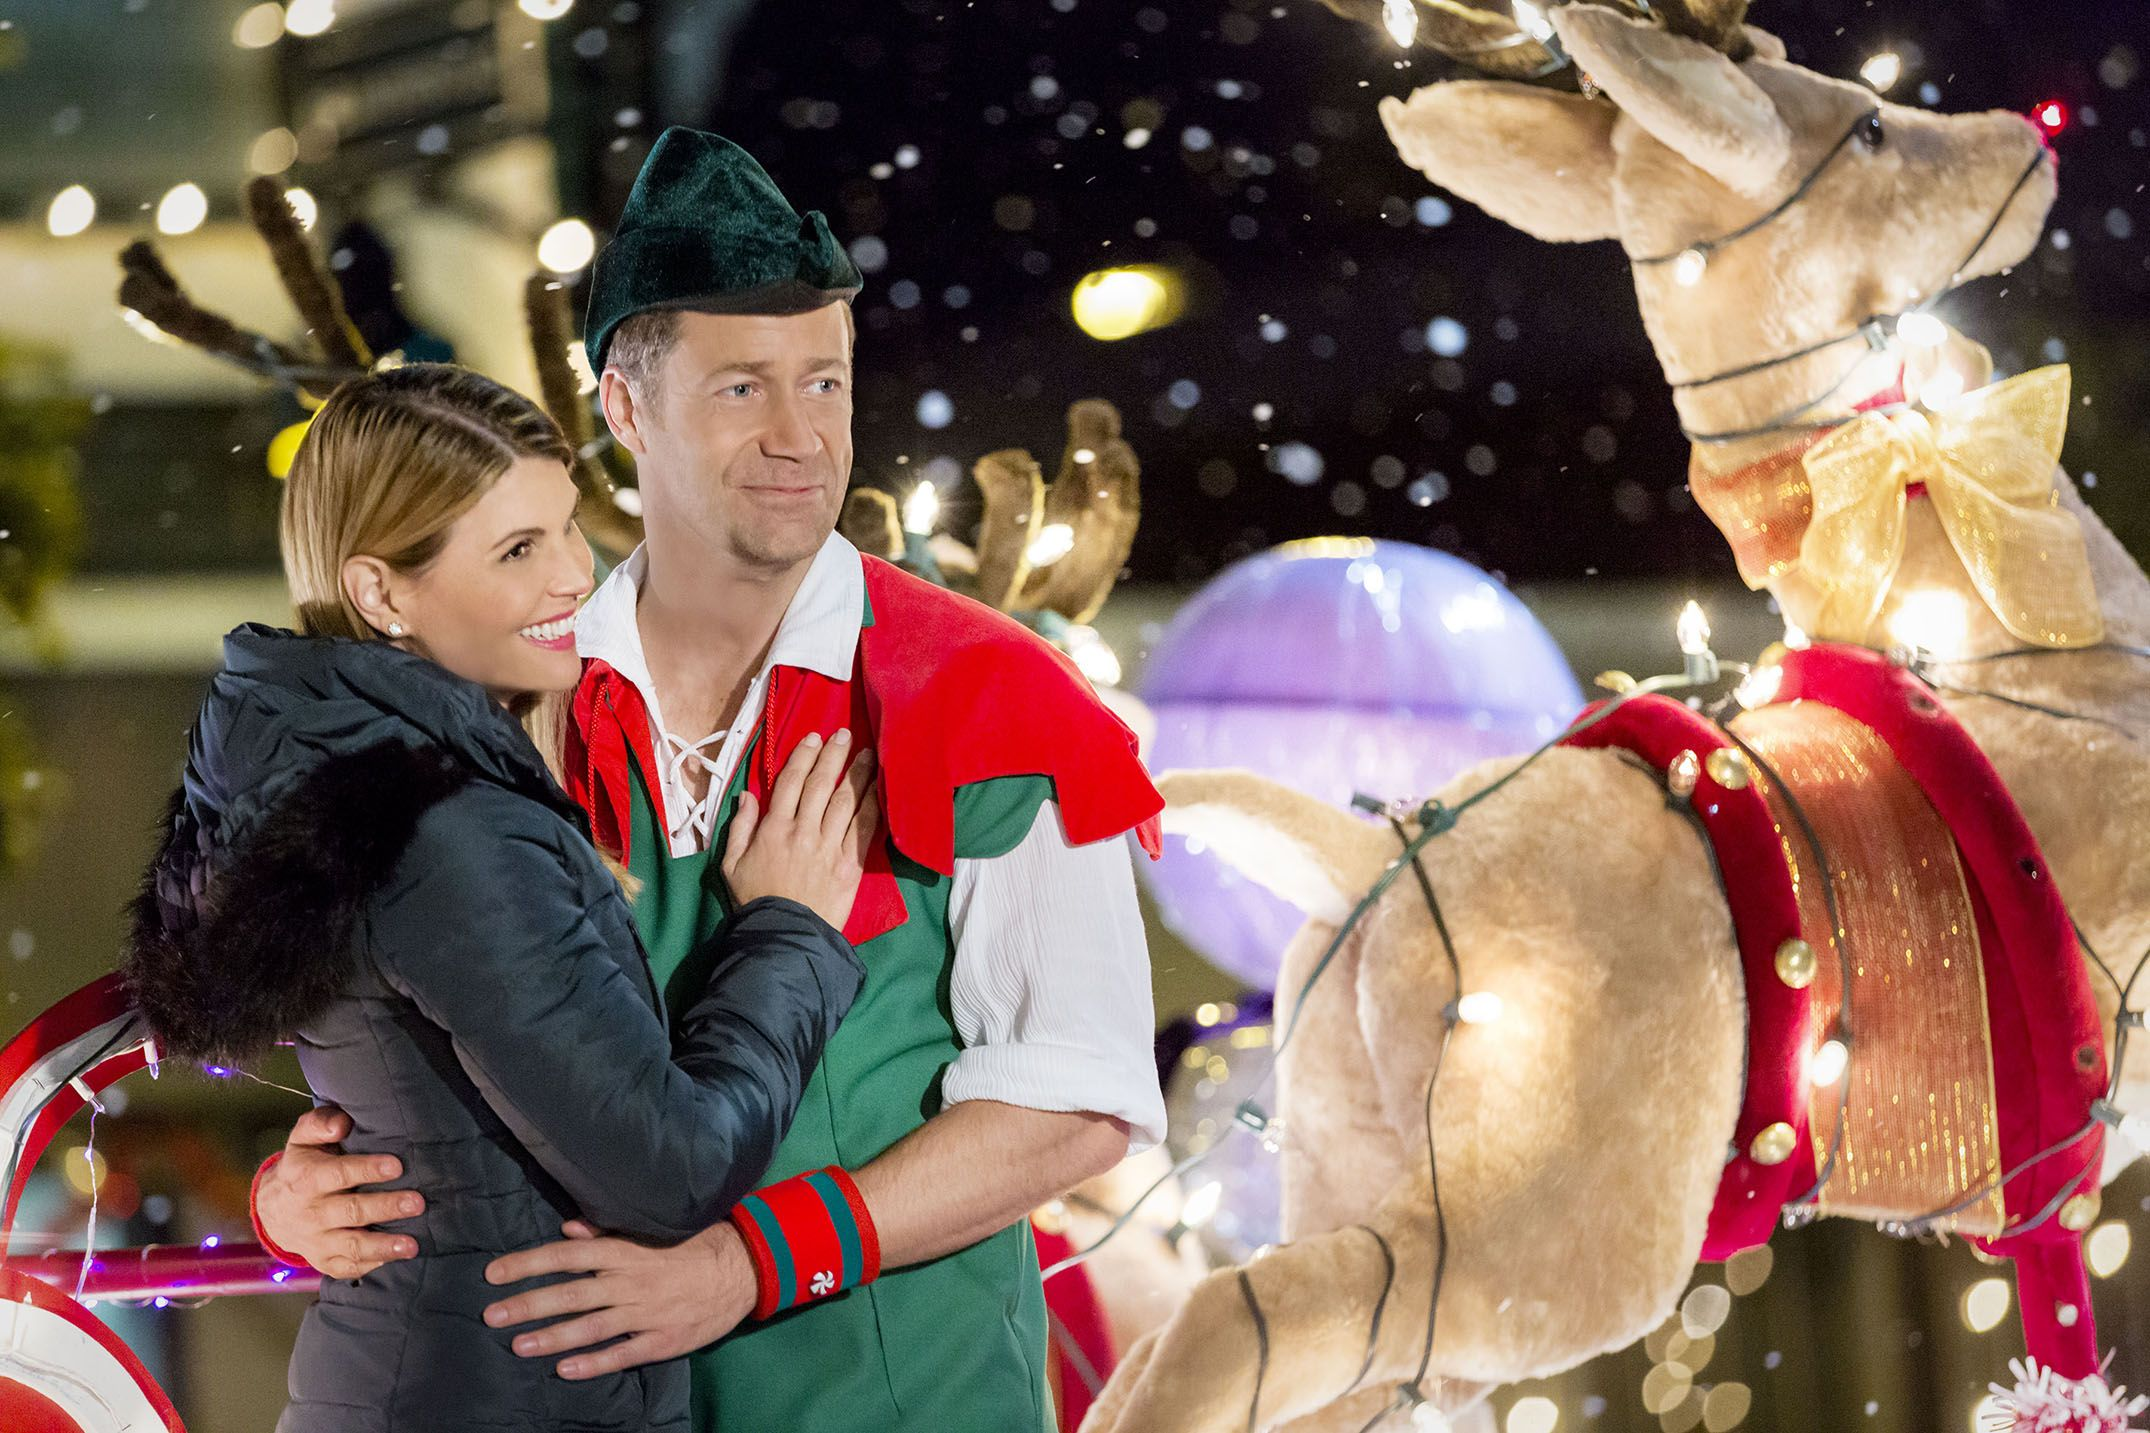 Hallmark Adds Two More Movies to 2018 \'Countdown to Christmas\' Lineup